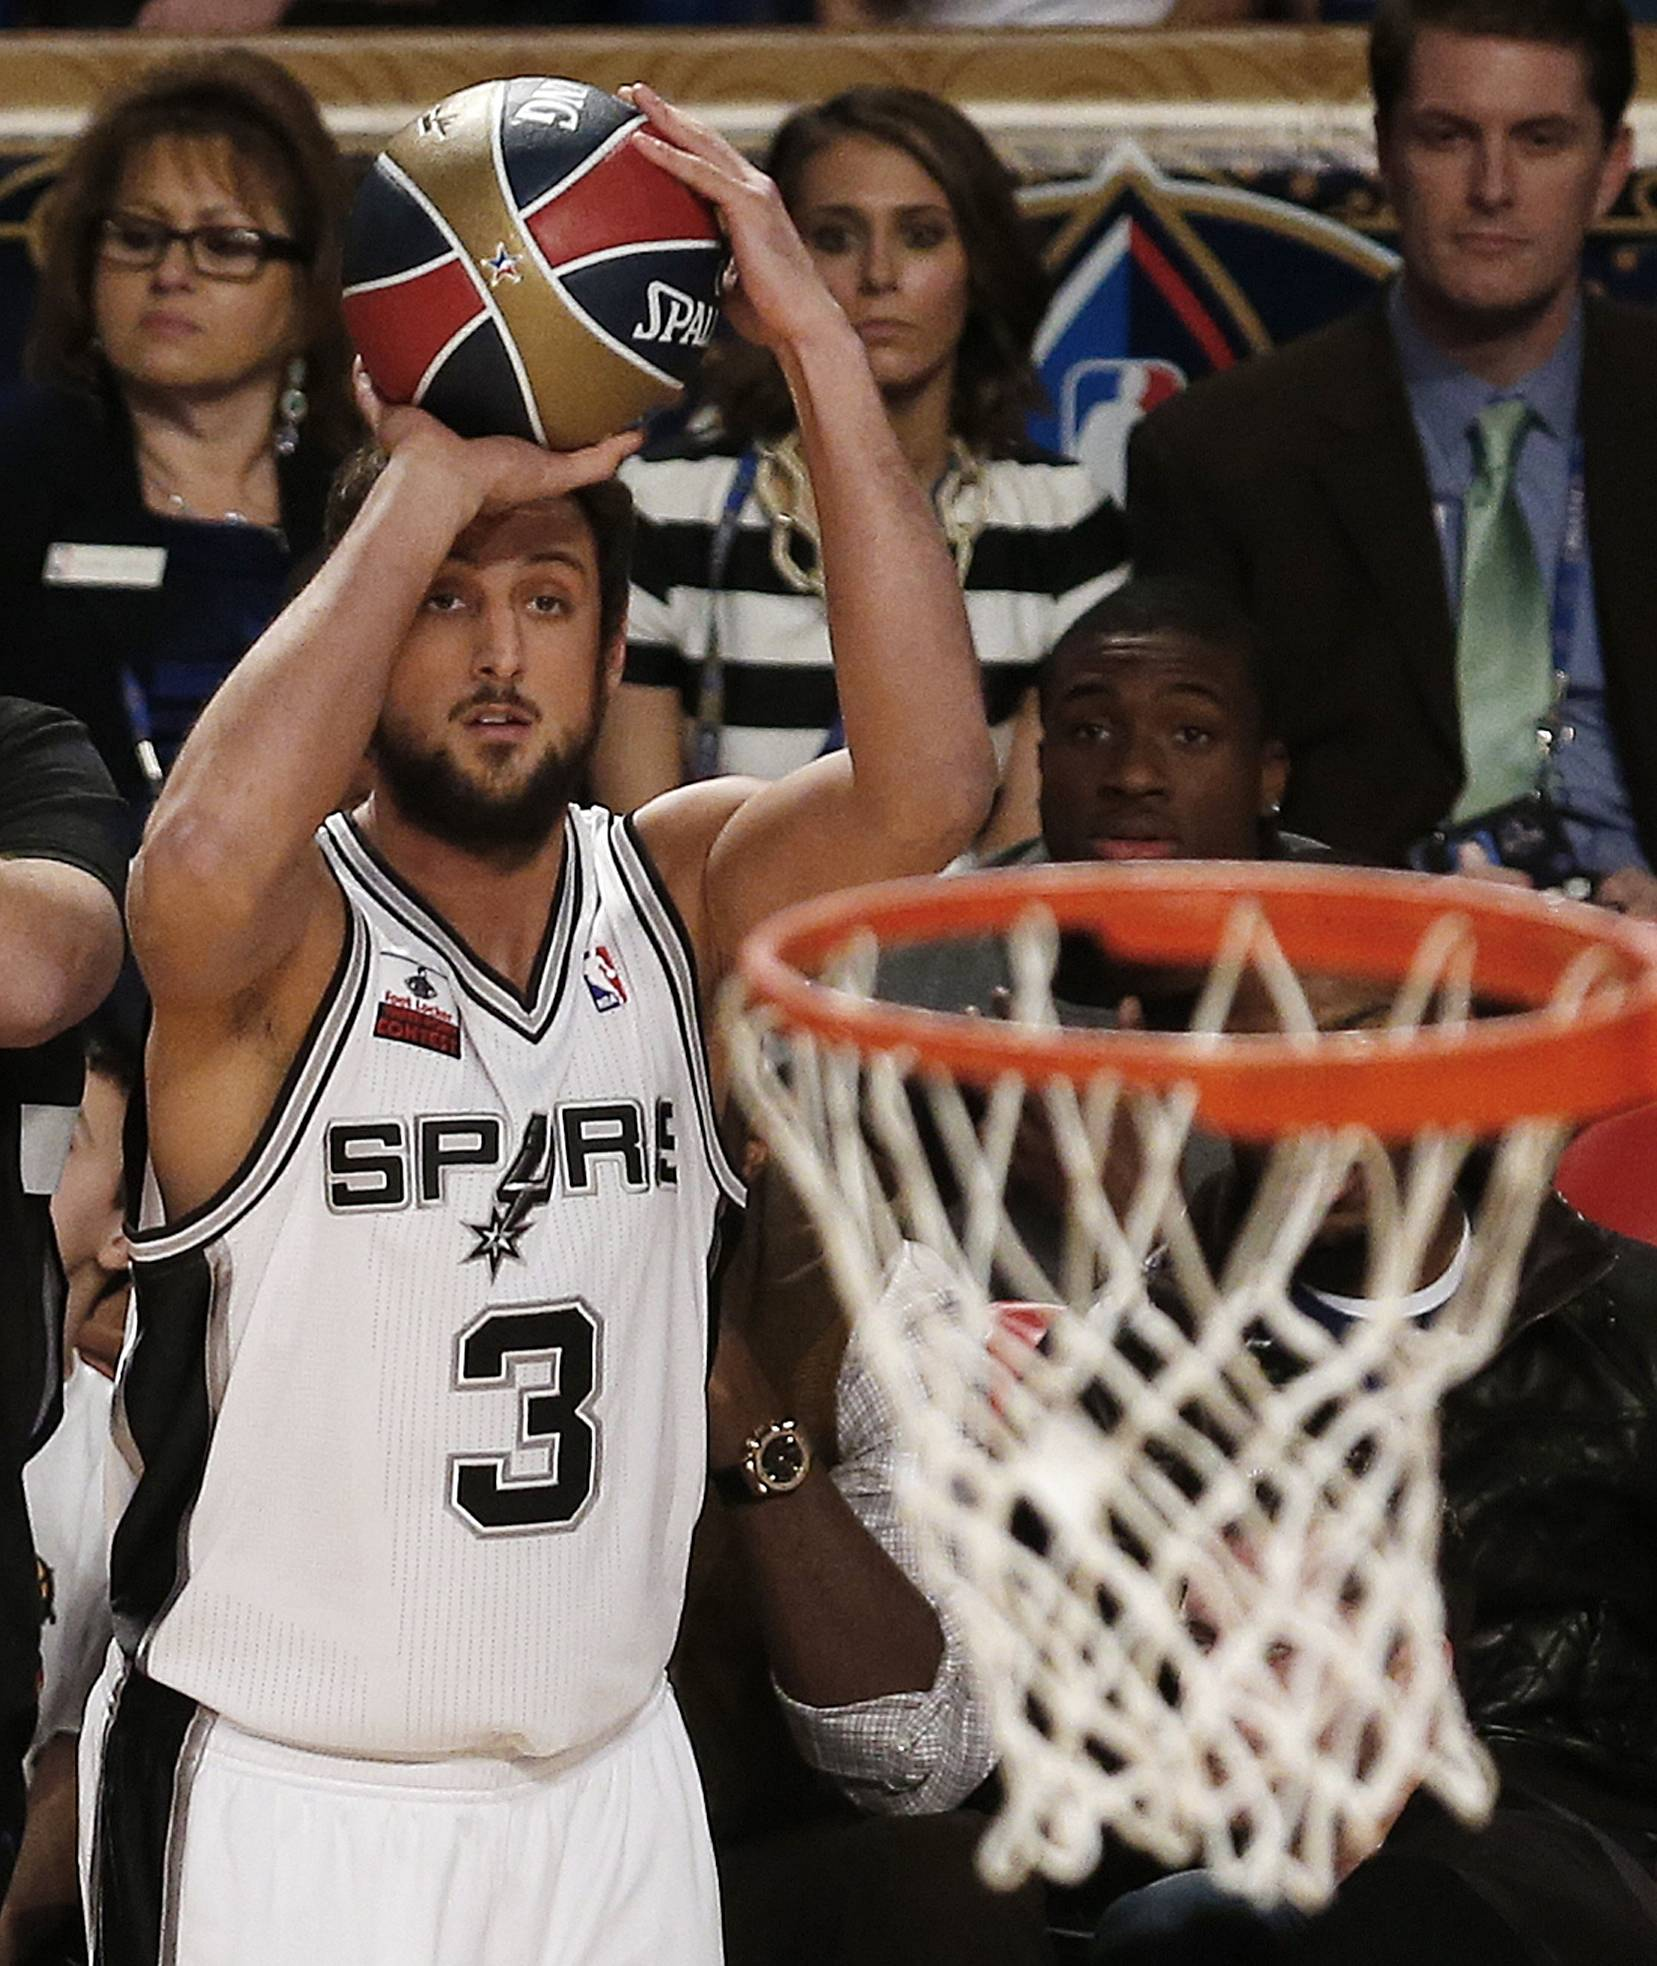 Marco Belinelli of the San Antonio Spurs shoots for the three-point contest during the skills competition at the NBA All-Star basketball game Saturday in New Orleans.